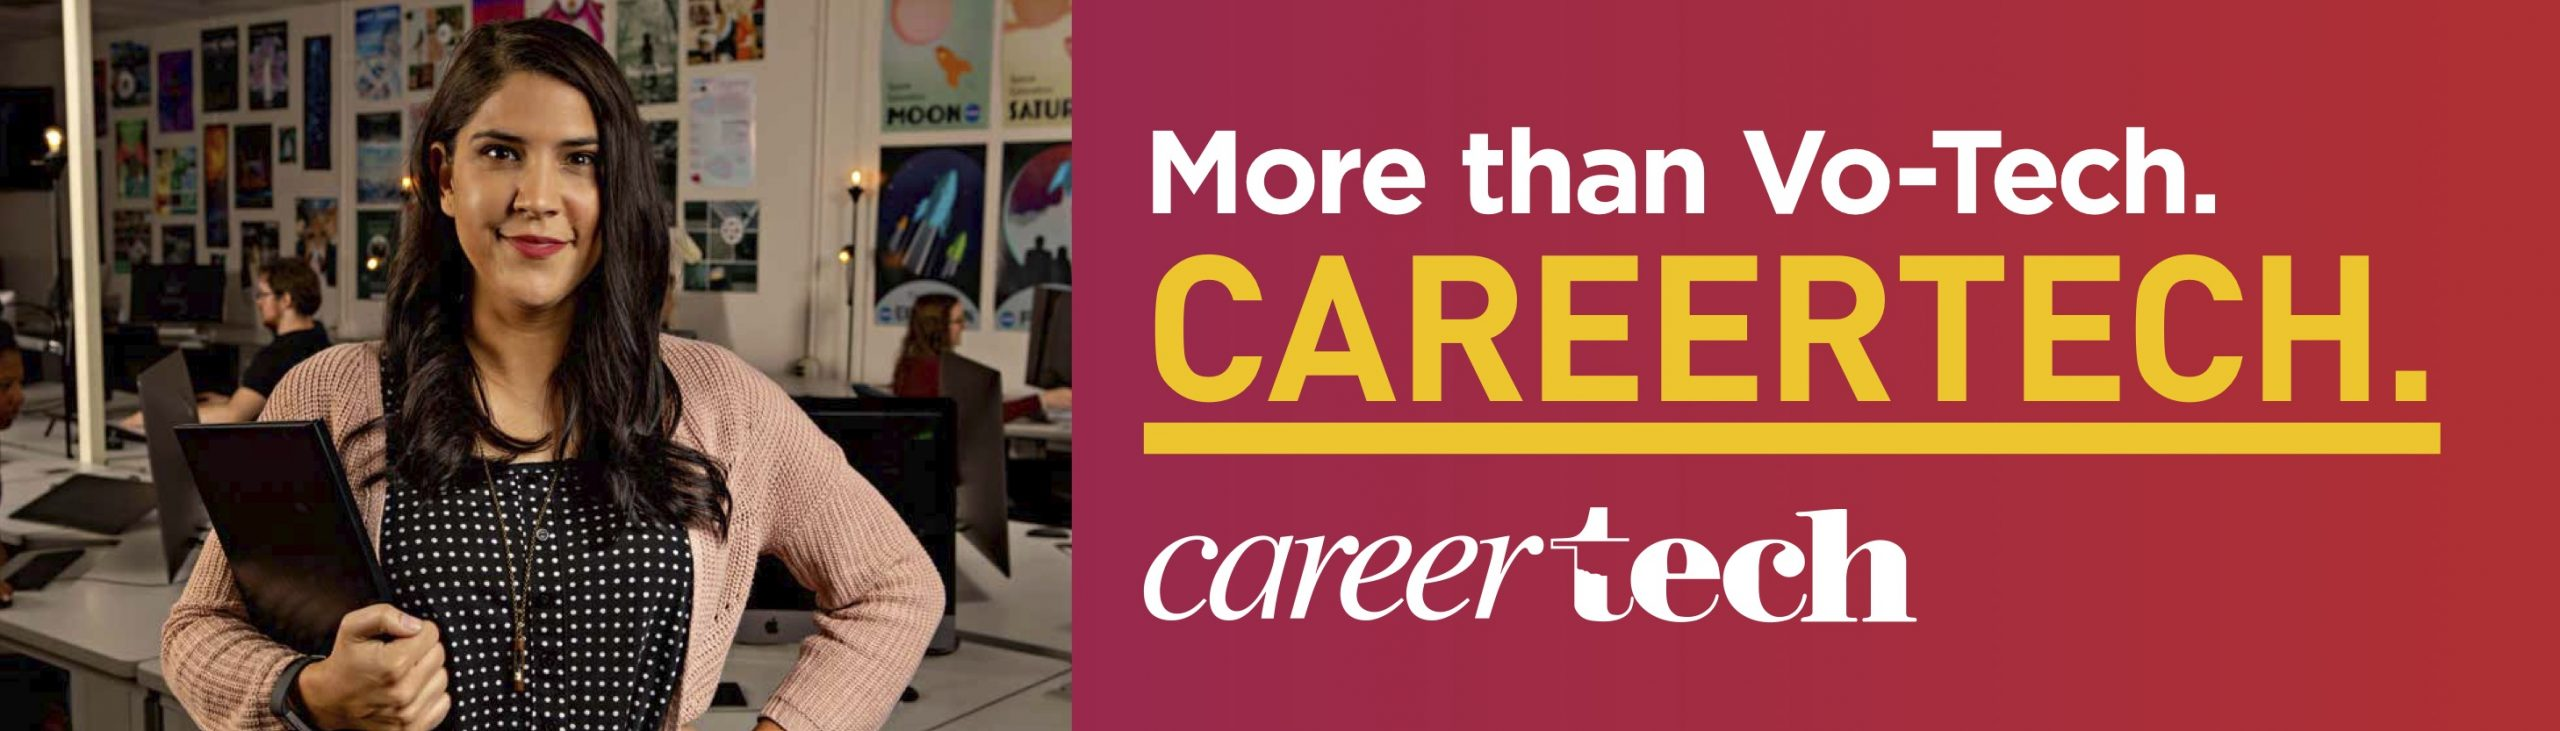 More than Vo-Tech. Careertech.